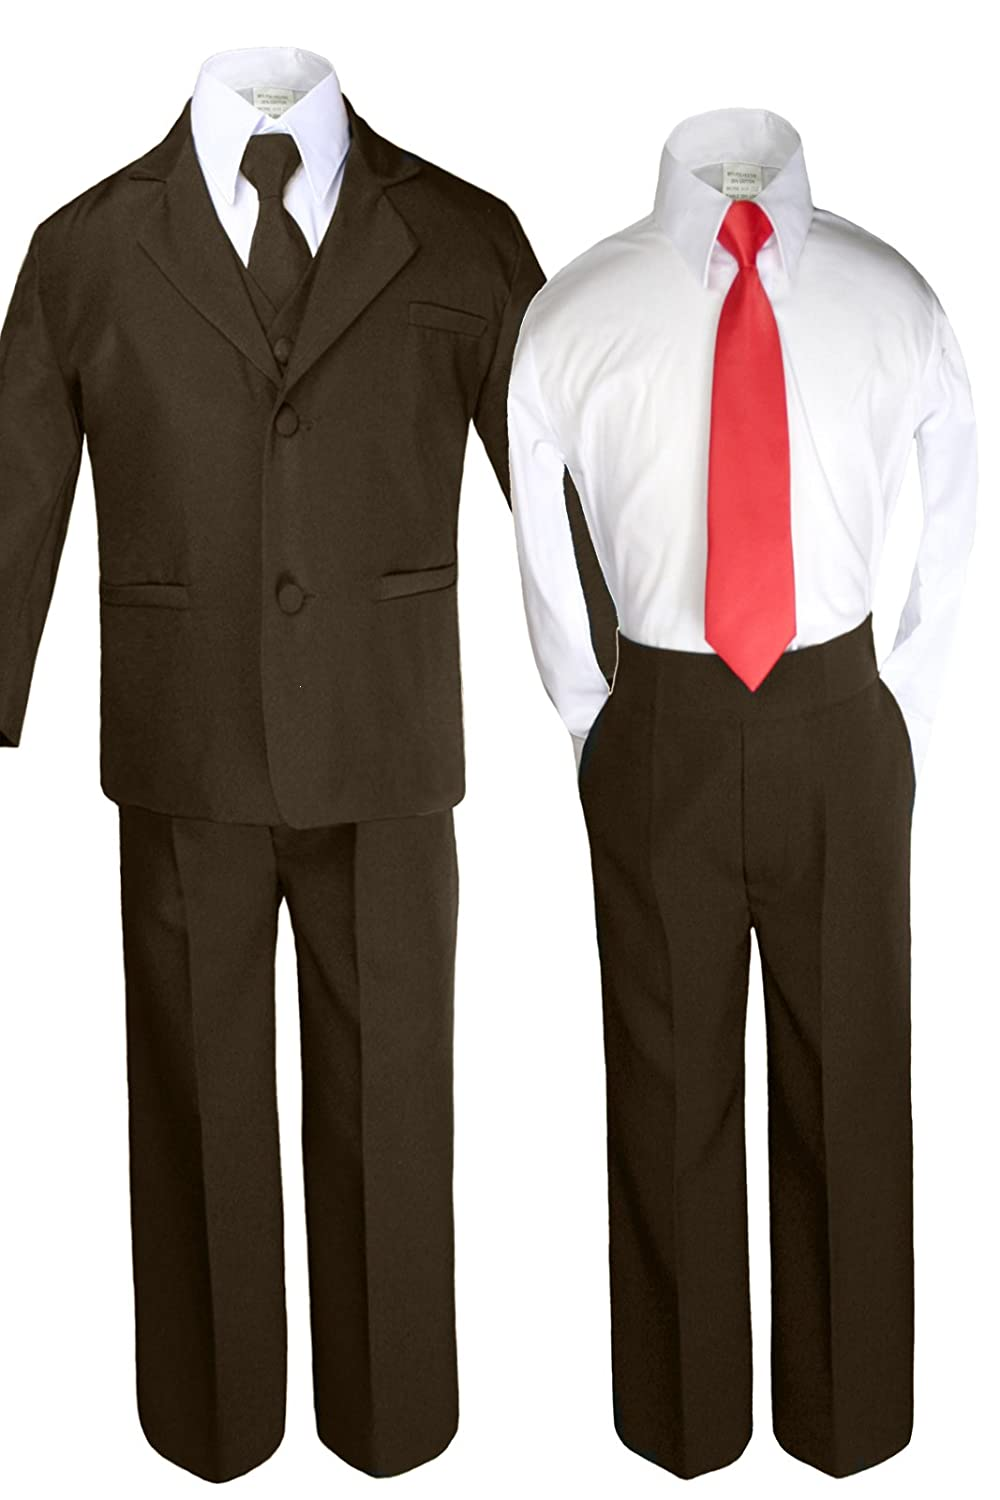 Unotux 6pc Boys Dark Brown Suits Sets with Satin Red Necktie Outfits All Size